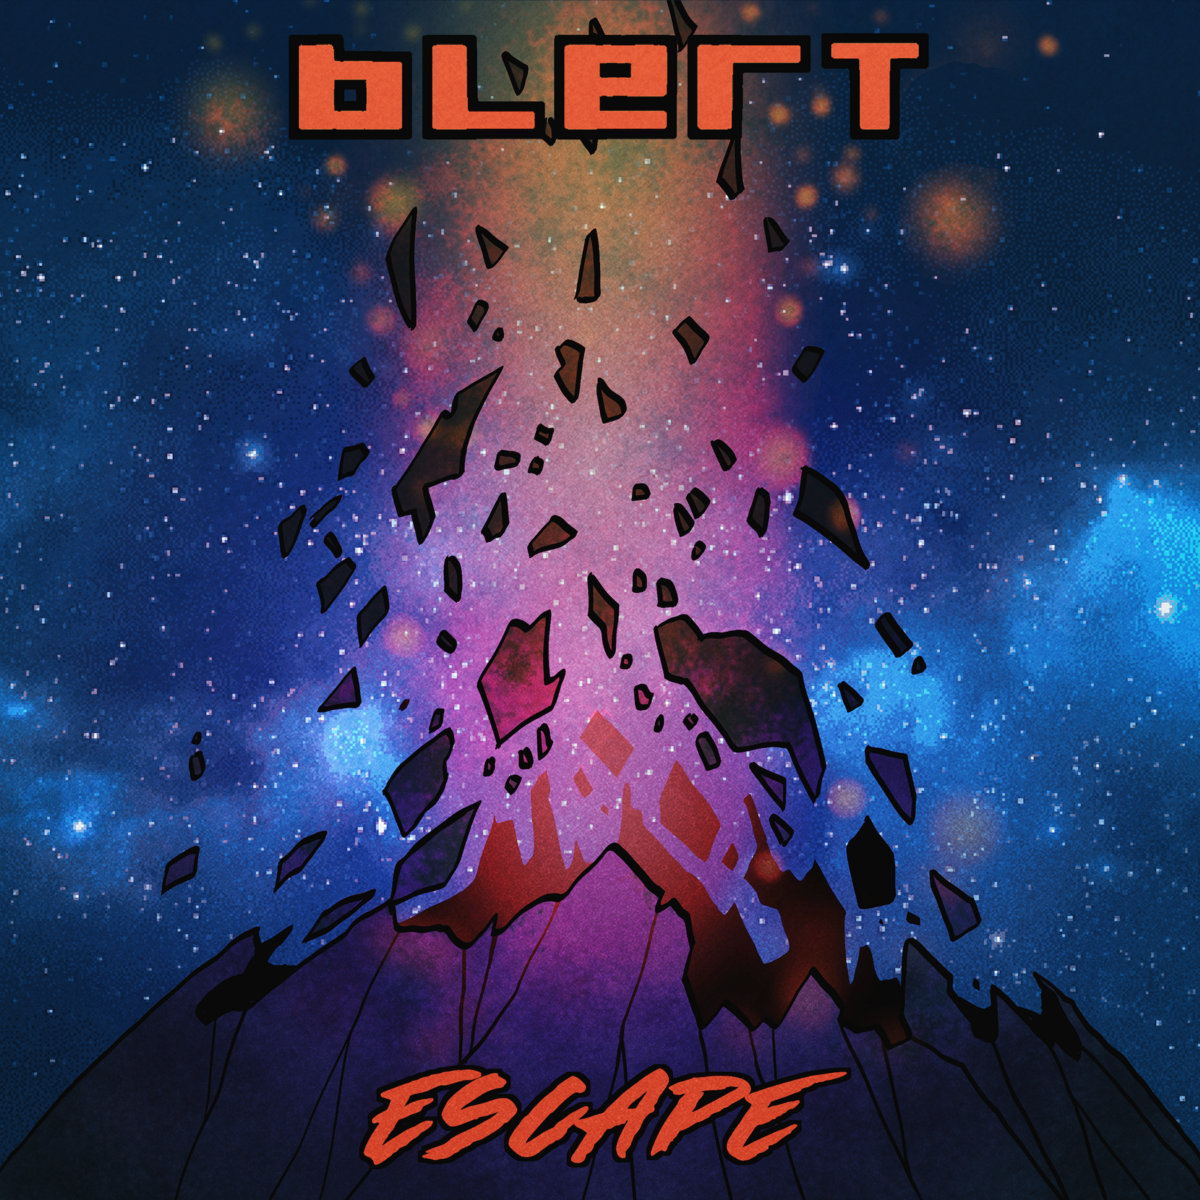 Escape by blert